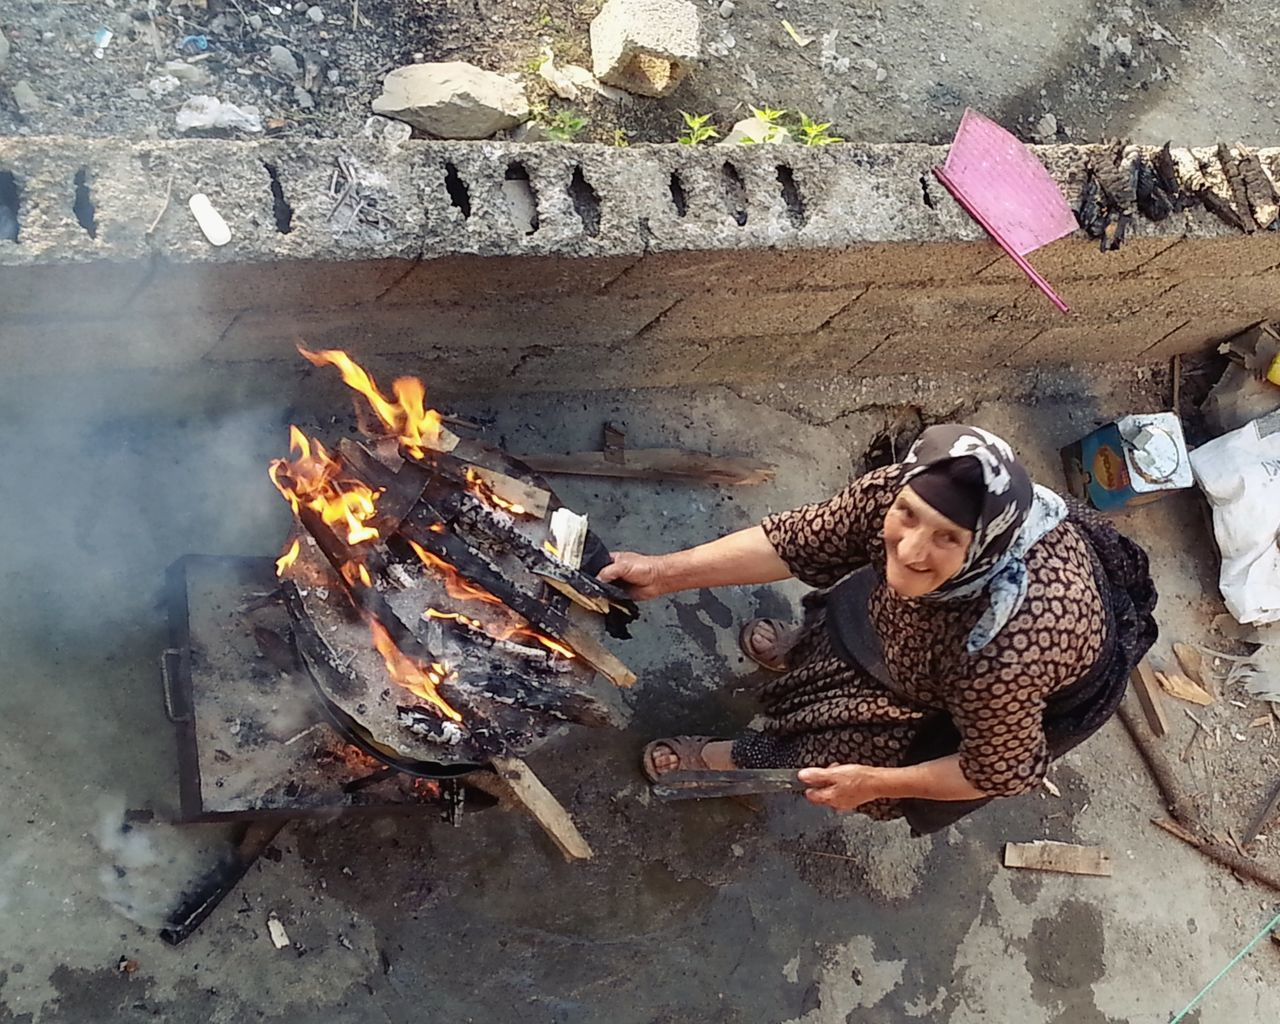 One Person Burning Cooking Outdoors Food Day Tranquility Handmade Outdoors Woman Portrait Woman Woman Around The World Woman At Work Woman Working Ordinary Day Routine Life Country People Rural Scene Rural Life Rural Making Food Food On Fire Fire Women Around The World